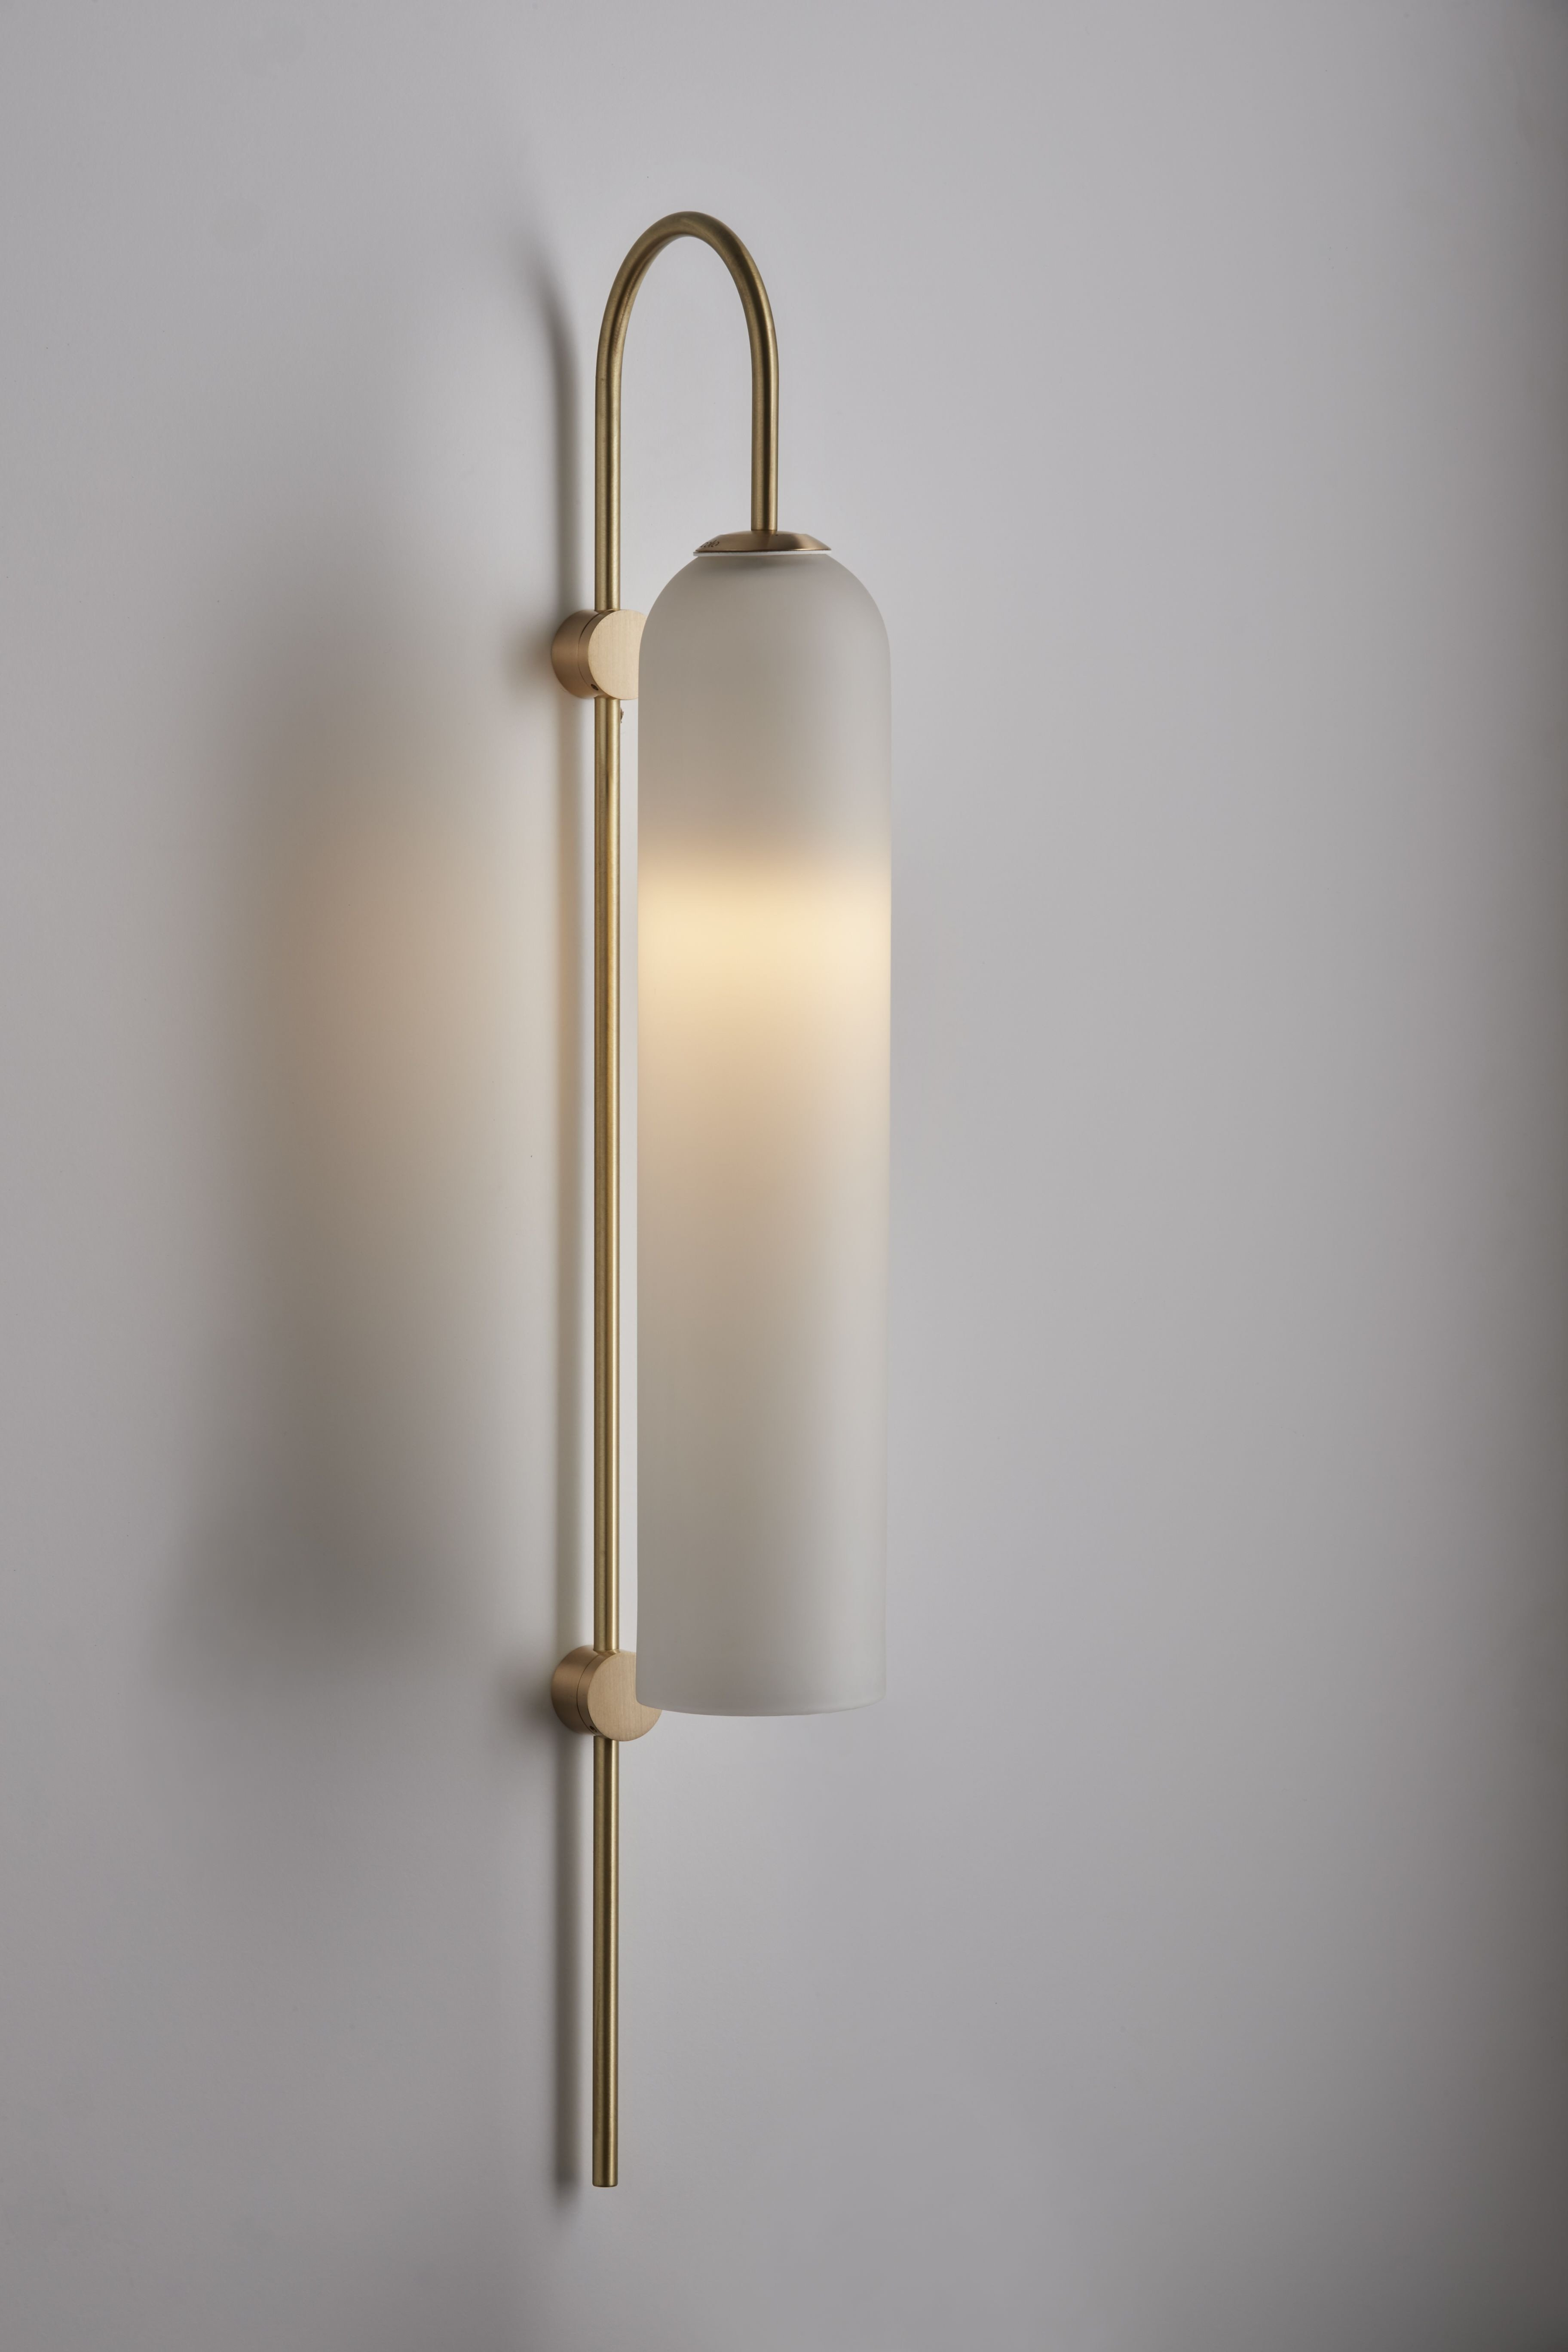 Wall Lamps for Bedroom Unique Articolo Float Wall Sconce Brass Rod and Fitting with Snow